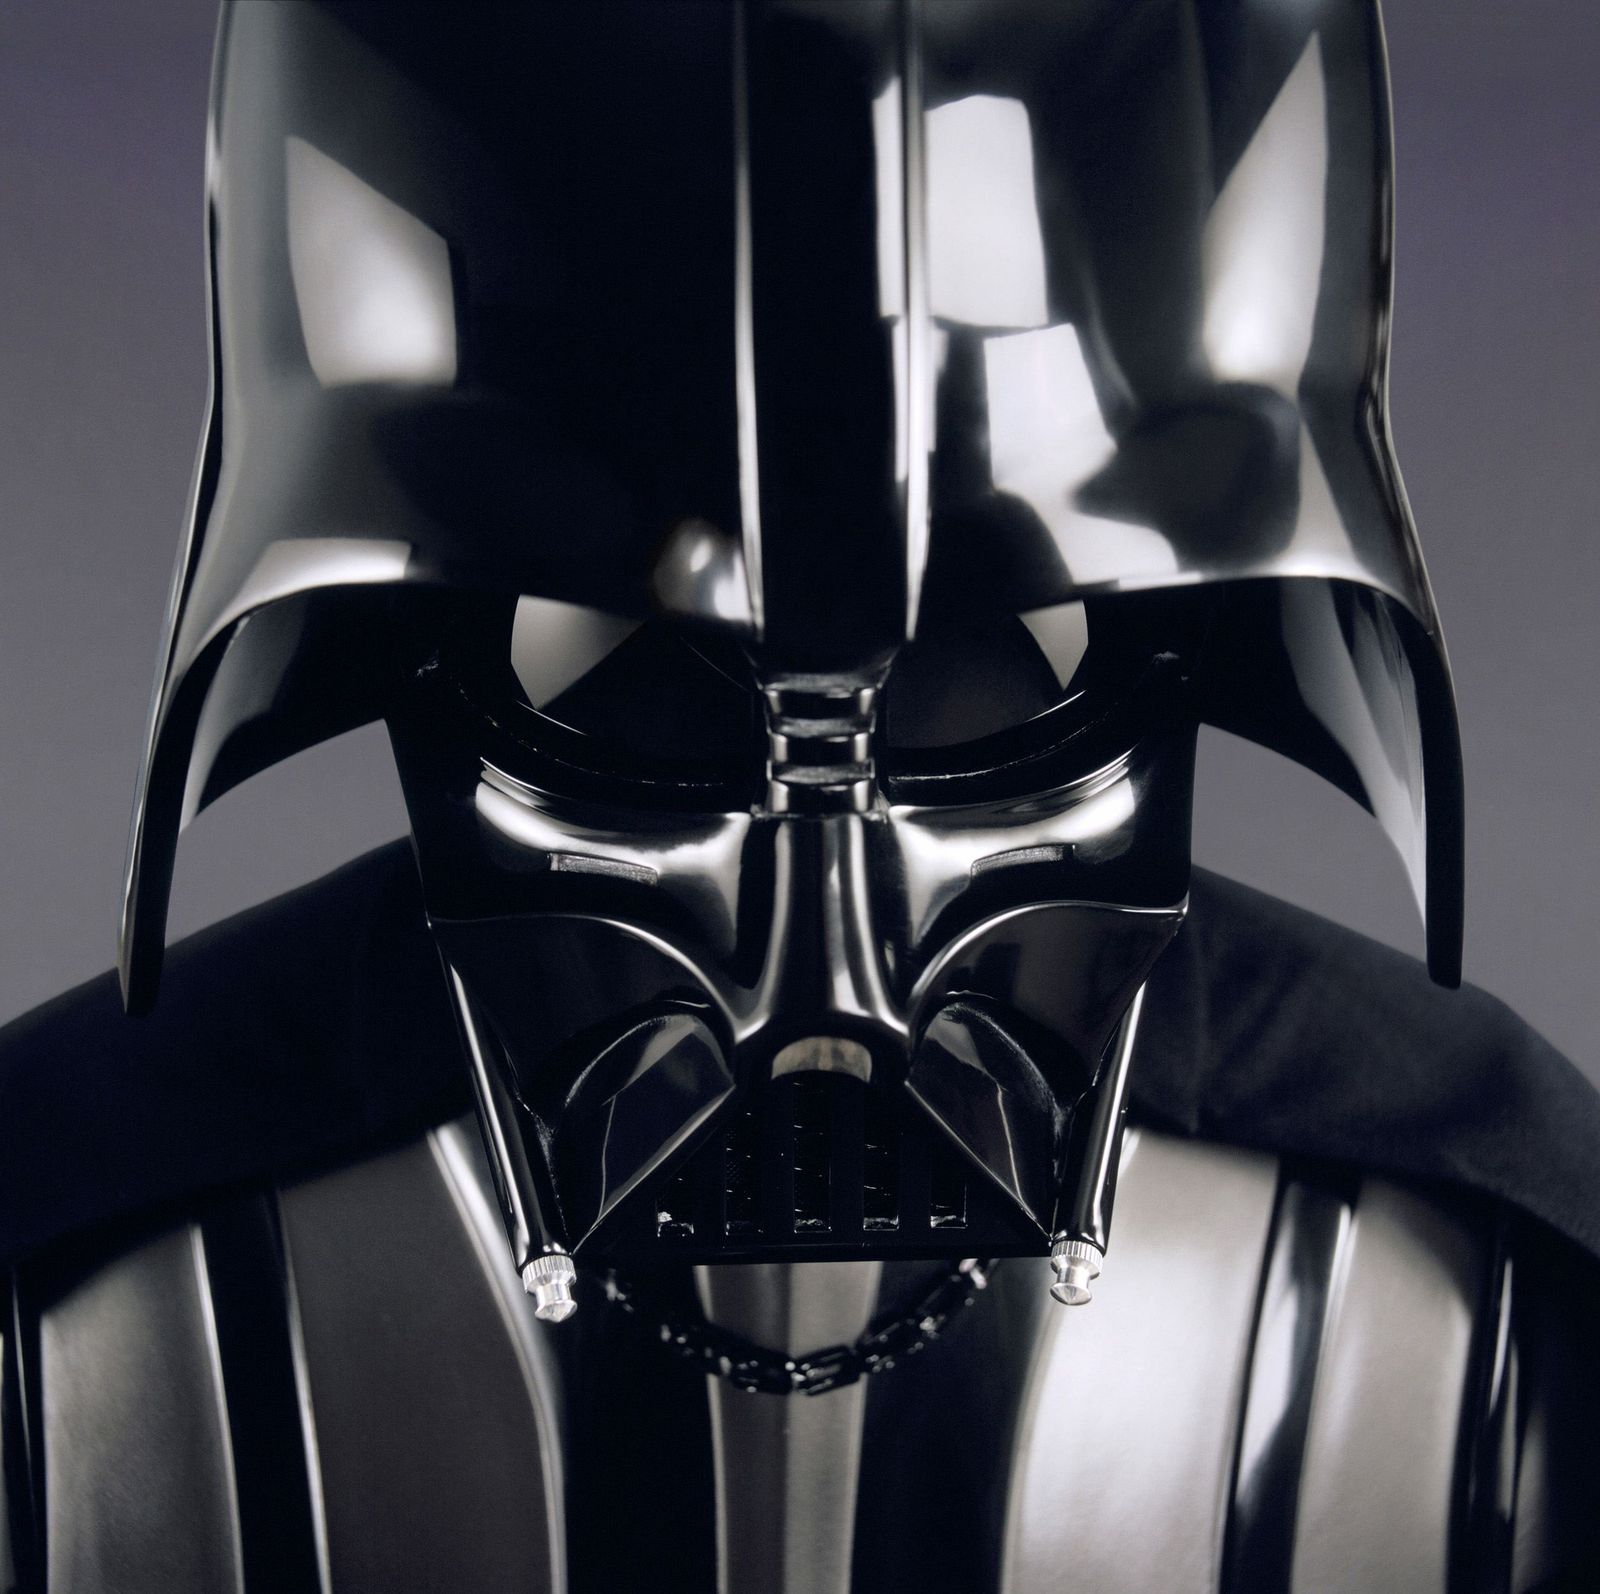 Darth Vader costume in portrait from Star Wars Episode III Revenge of the Sith